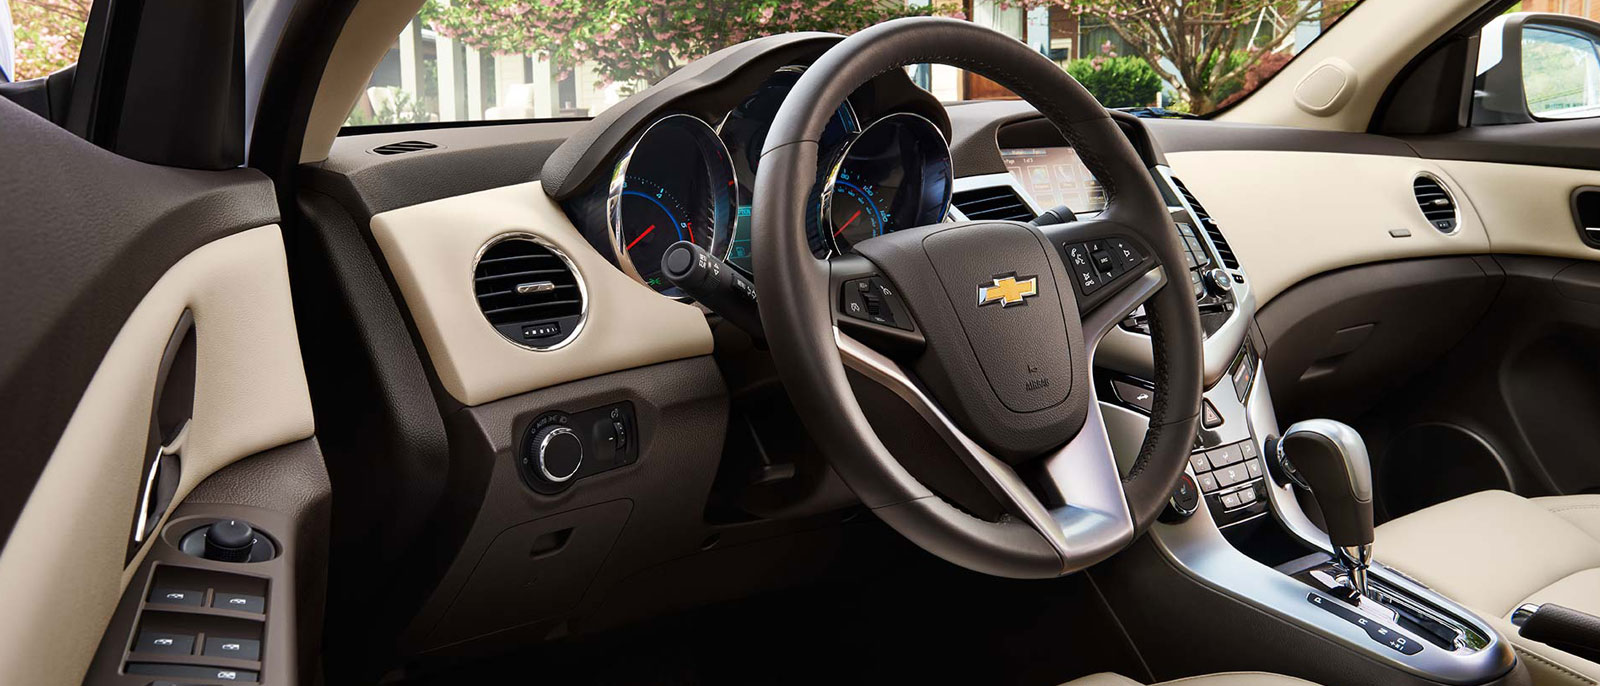 2016 Chevrolet Cruze Limited Interior ...